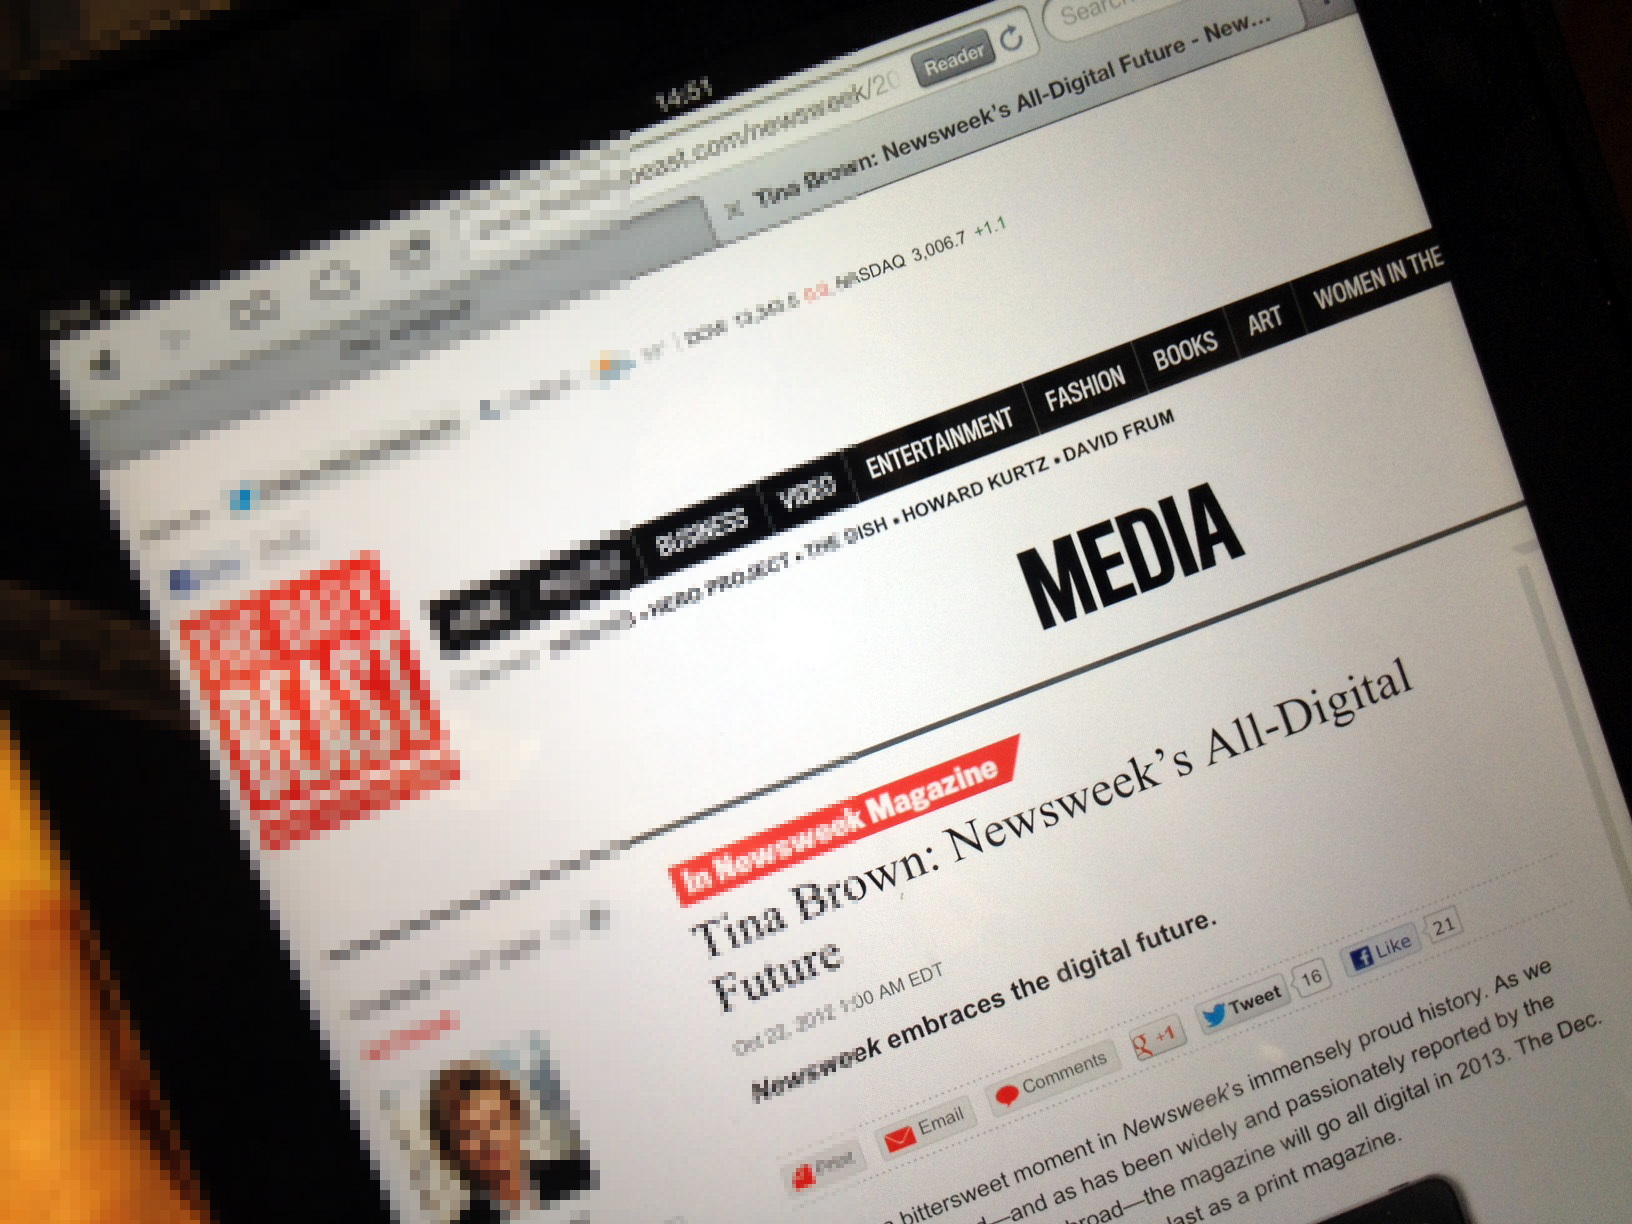 Newsweek announces the digital transition